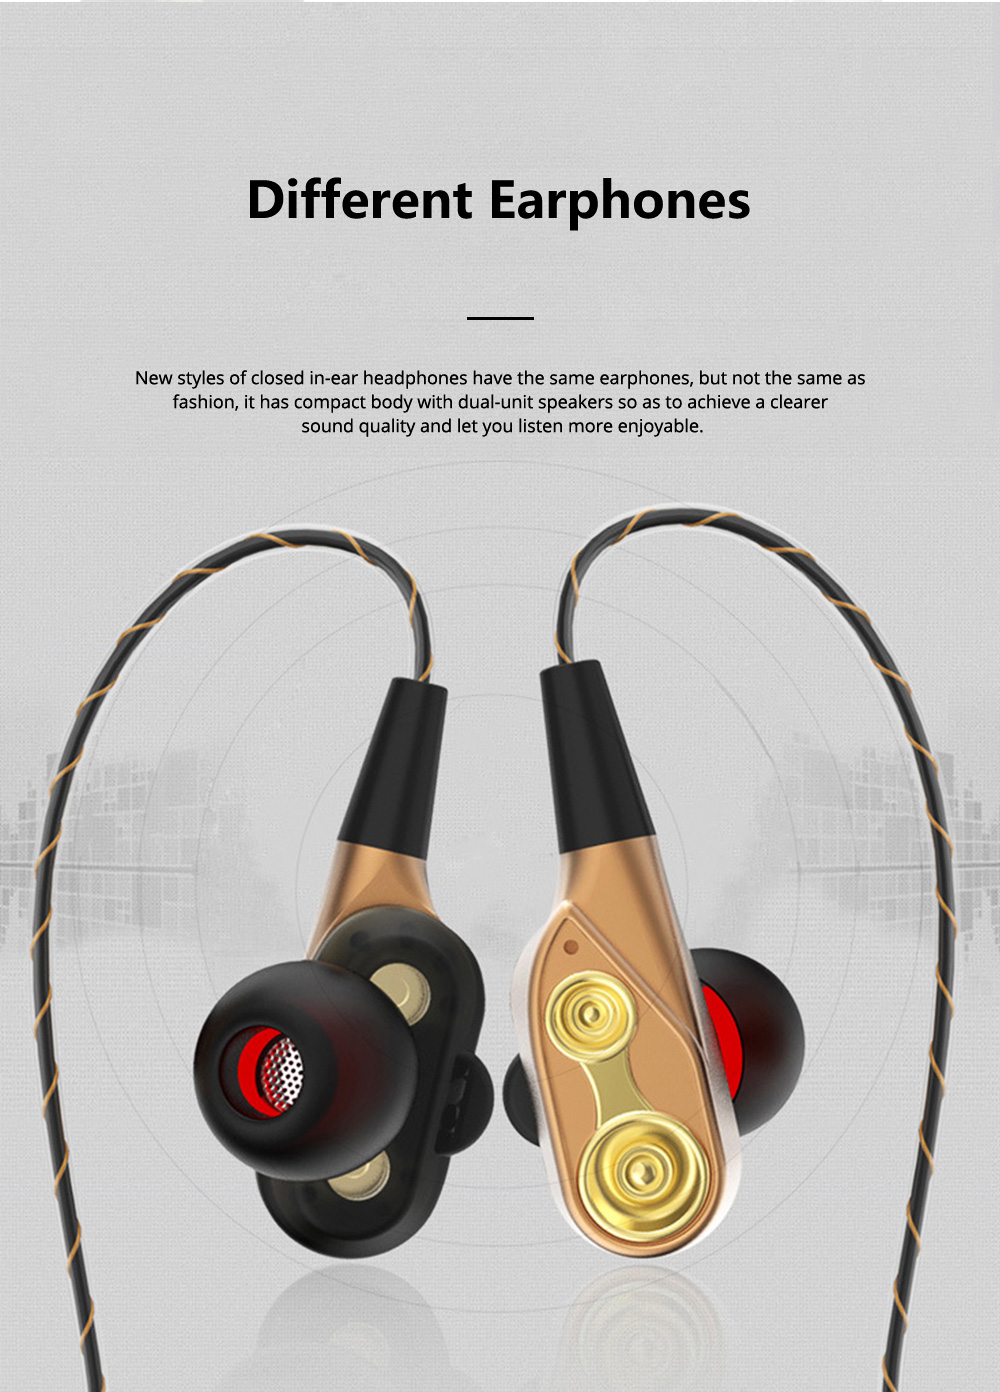 HIFI Heavy Bass Metal Sports Headsets Wired Mobile Phone In Ear Earphone Type C HD Voice Headphones For Cell Phone MP3 Player 8